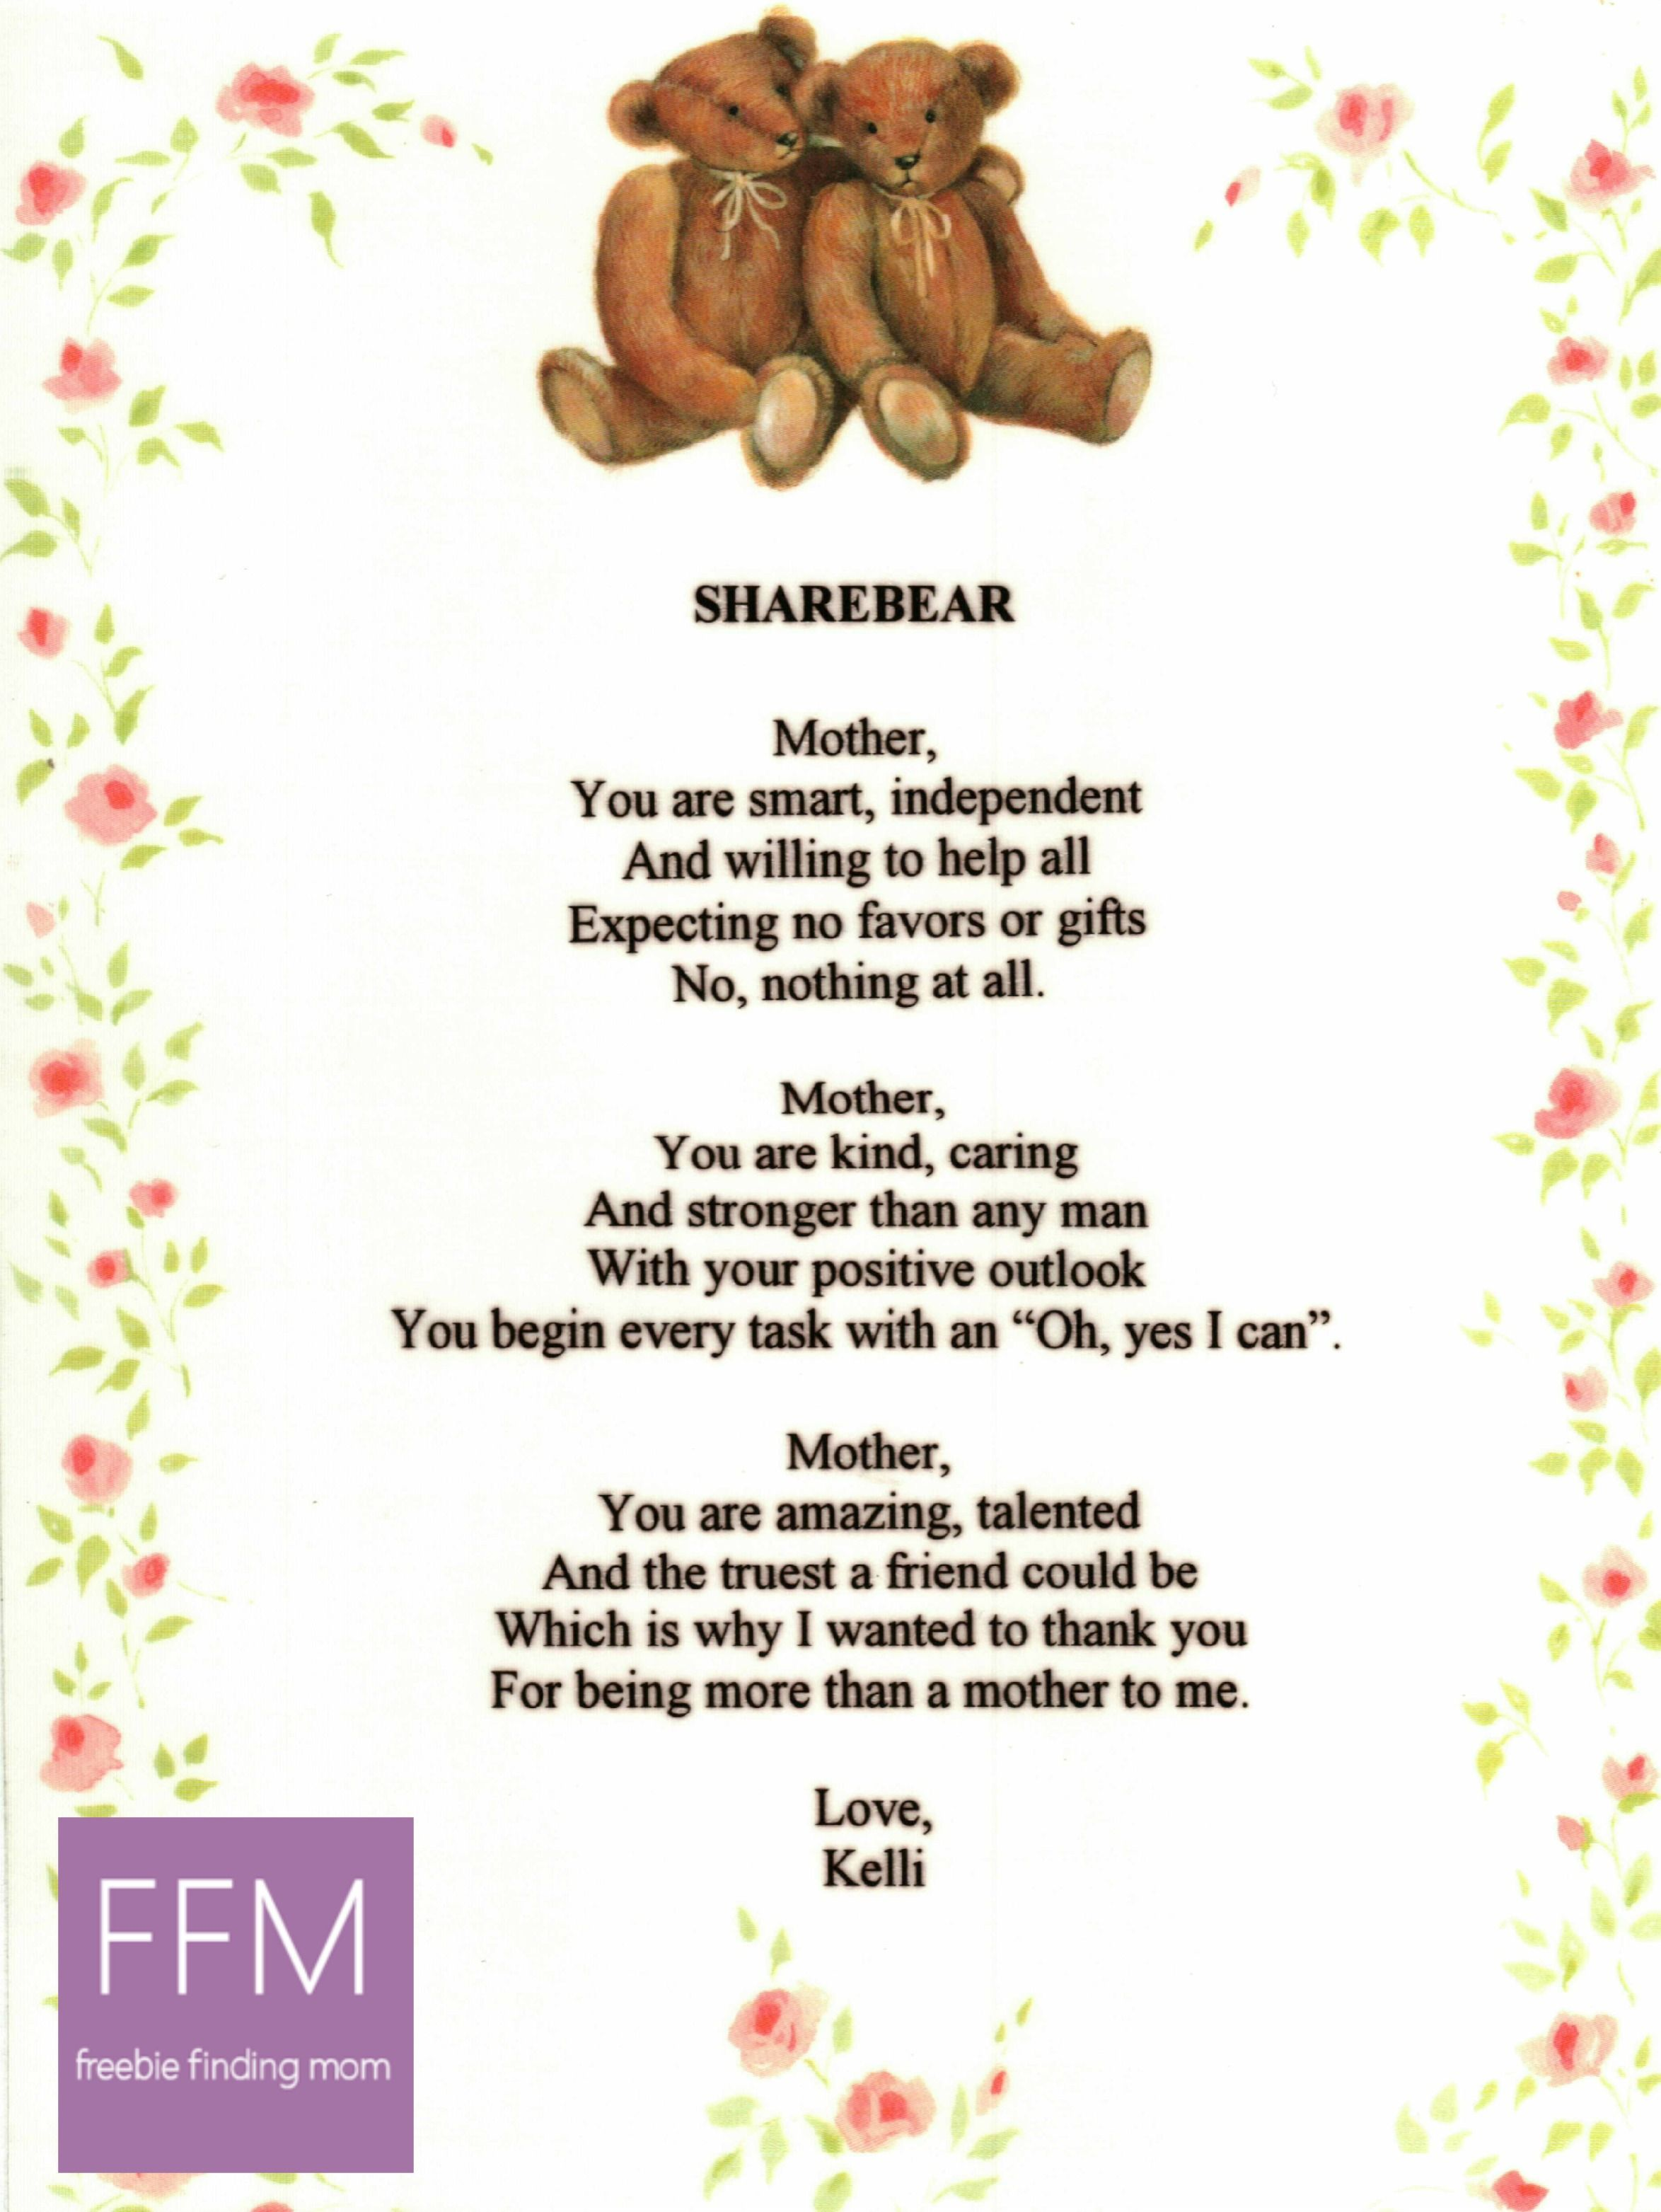 A Mother's Day Poem From Freebie Finding Mom + Mother's Day Gift ...